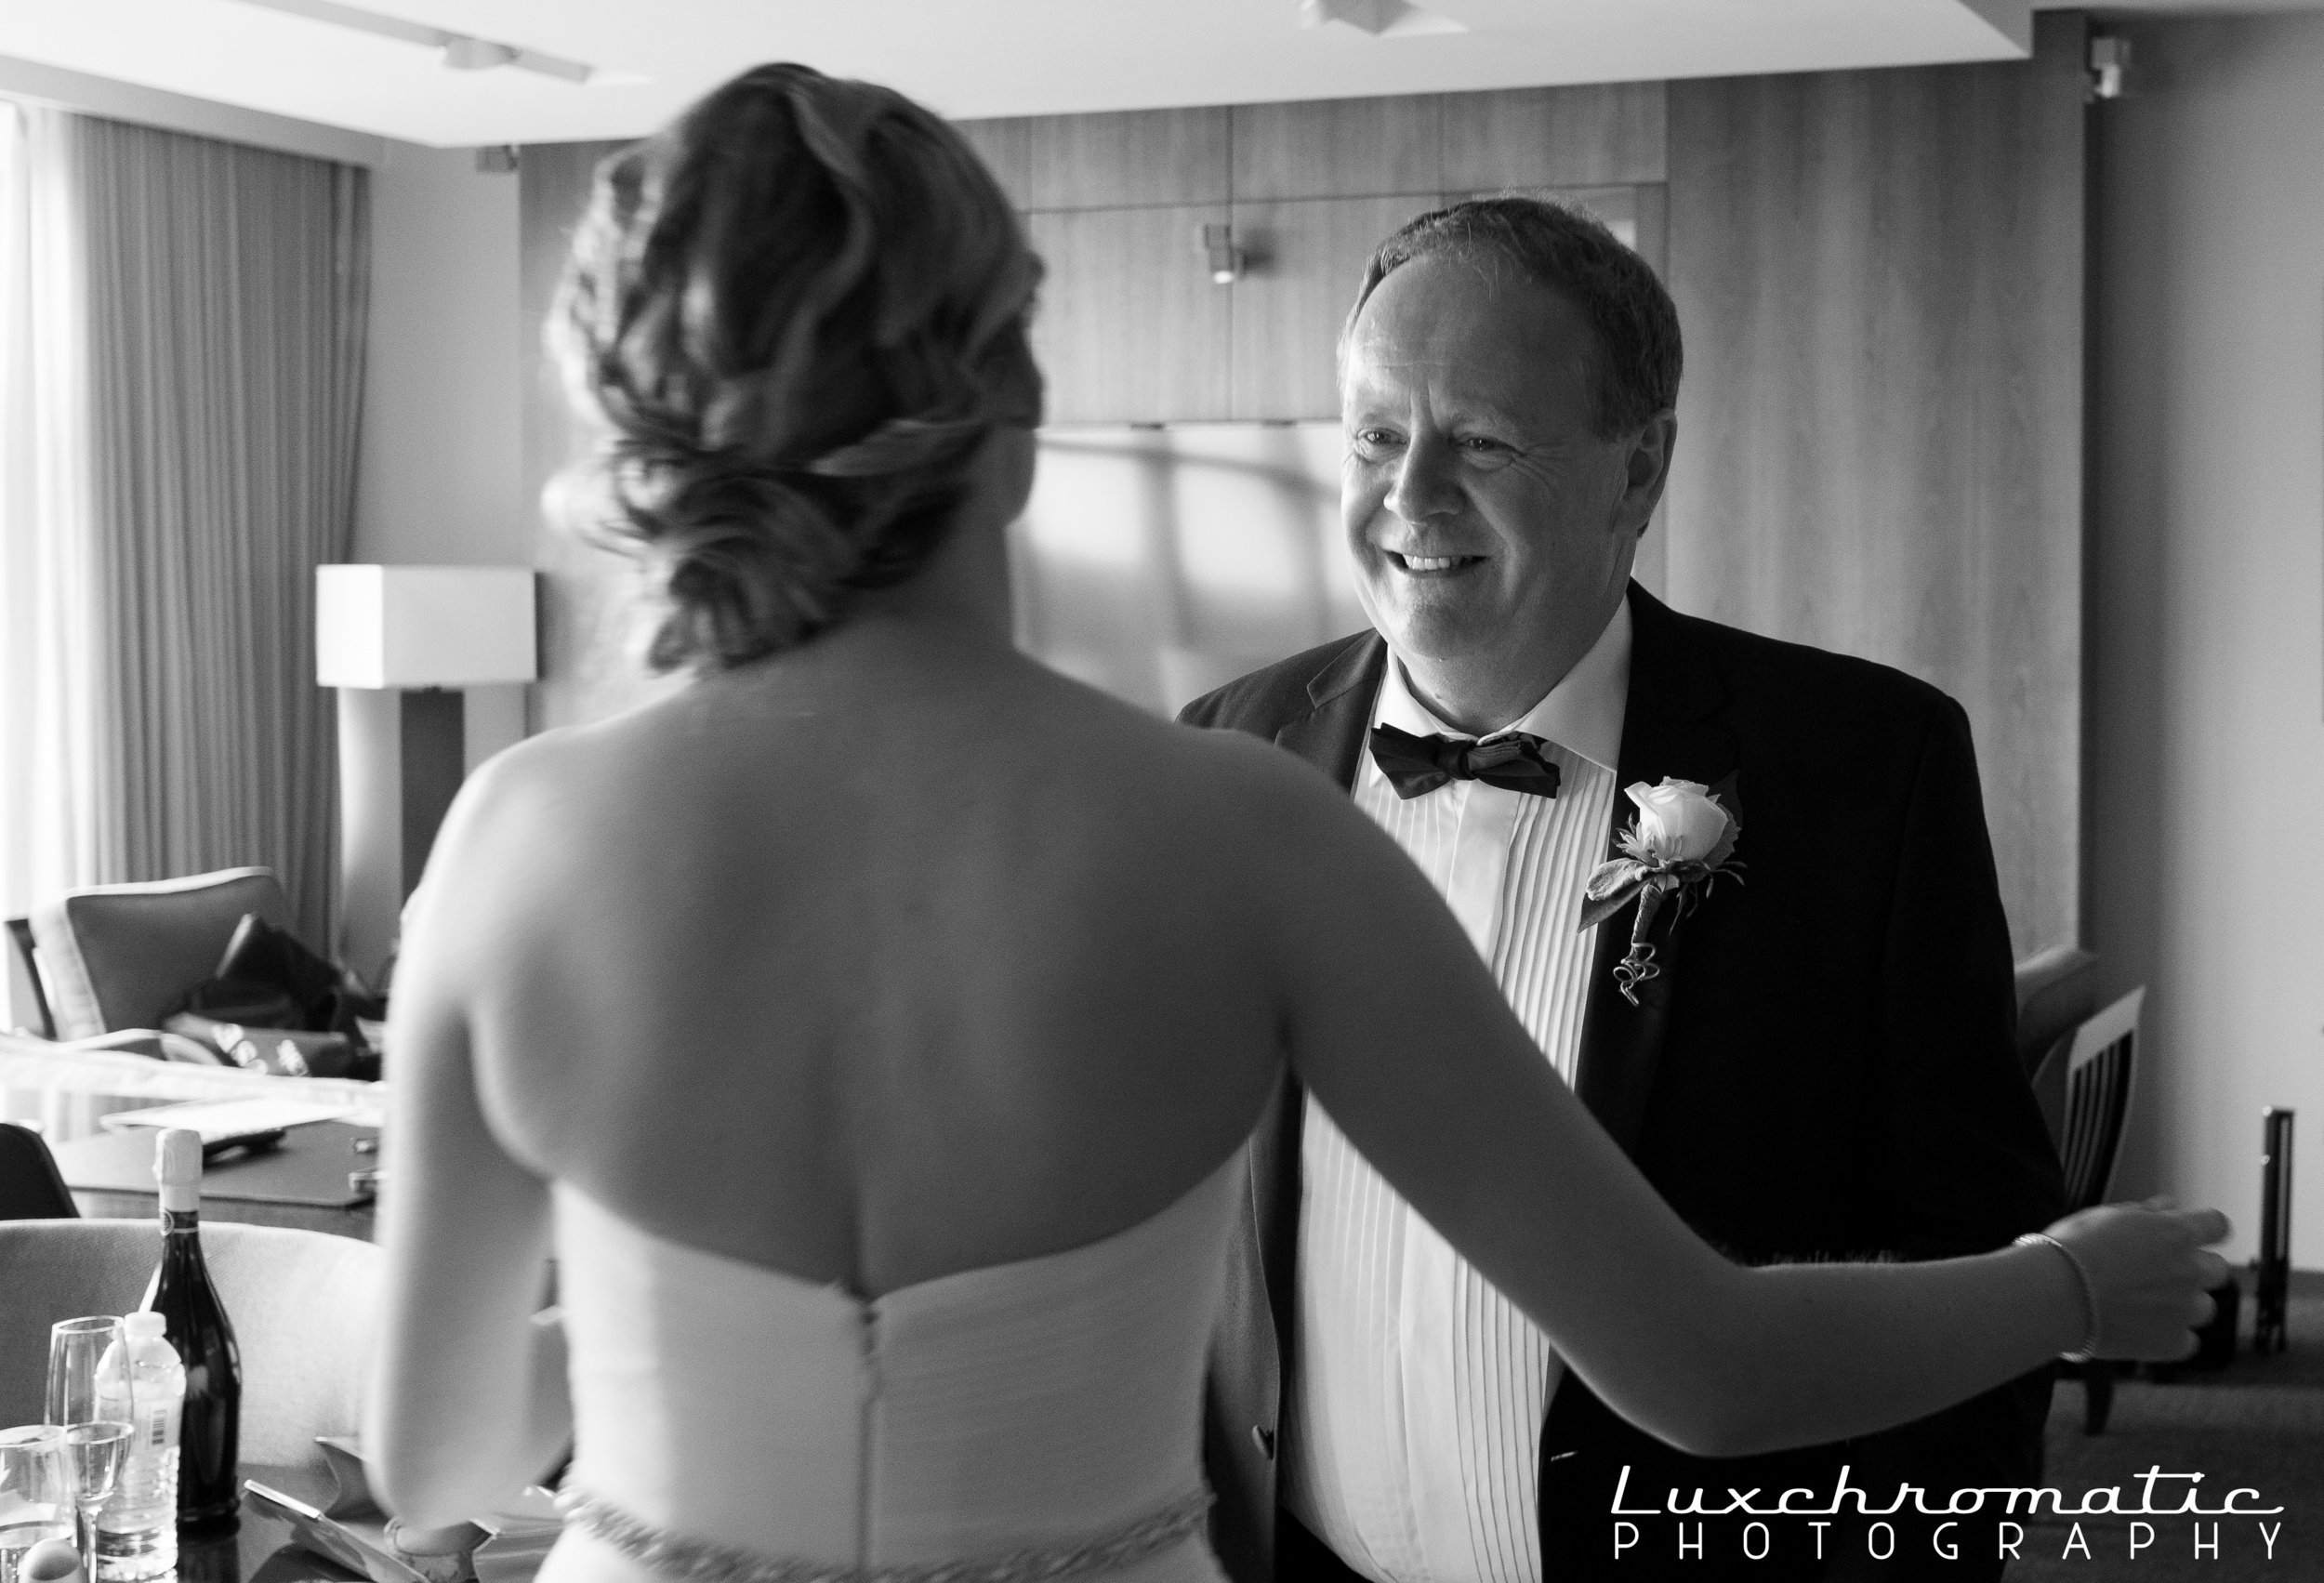 San-Francisco-Bay-Area-Wedding-Four-Seasons-Hotel-Silicon-Valley-Bride-Groom-Luxchromatic-Photography_Sarah_Danny-1028.jpg